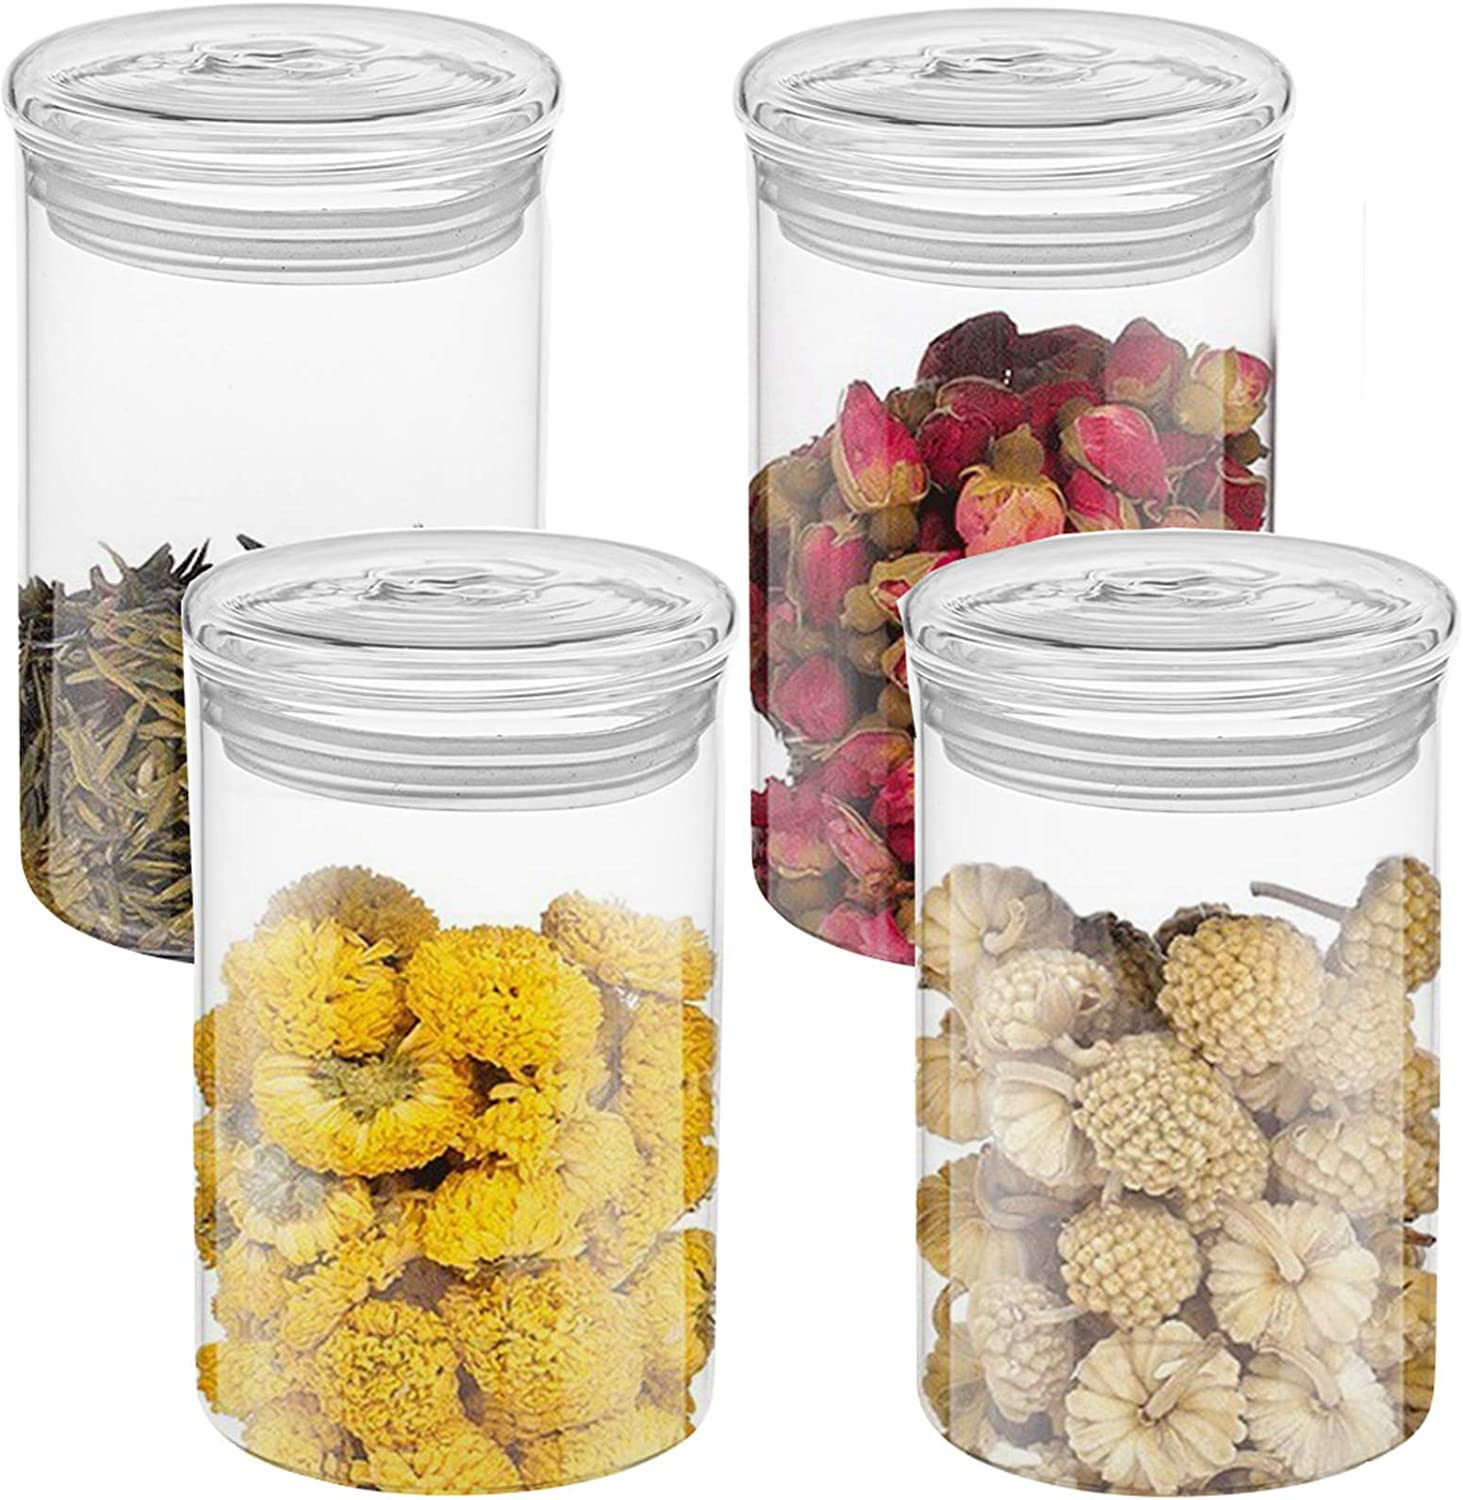 Lawei Set of 4 Clear Glass Jars with Lids - 15 Oz Glass Canisters Food Storage Jars Glass Bulk Food Jars for Storage Tea Coffee Beans Sugar Cookie and Candy